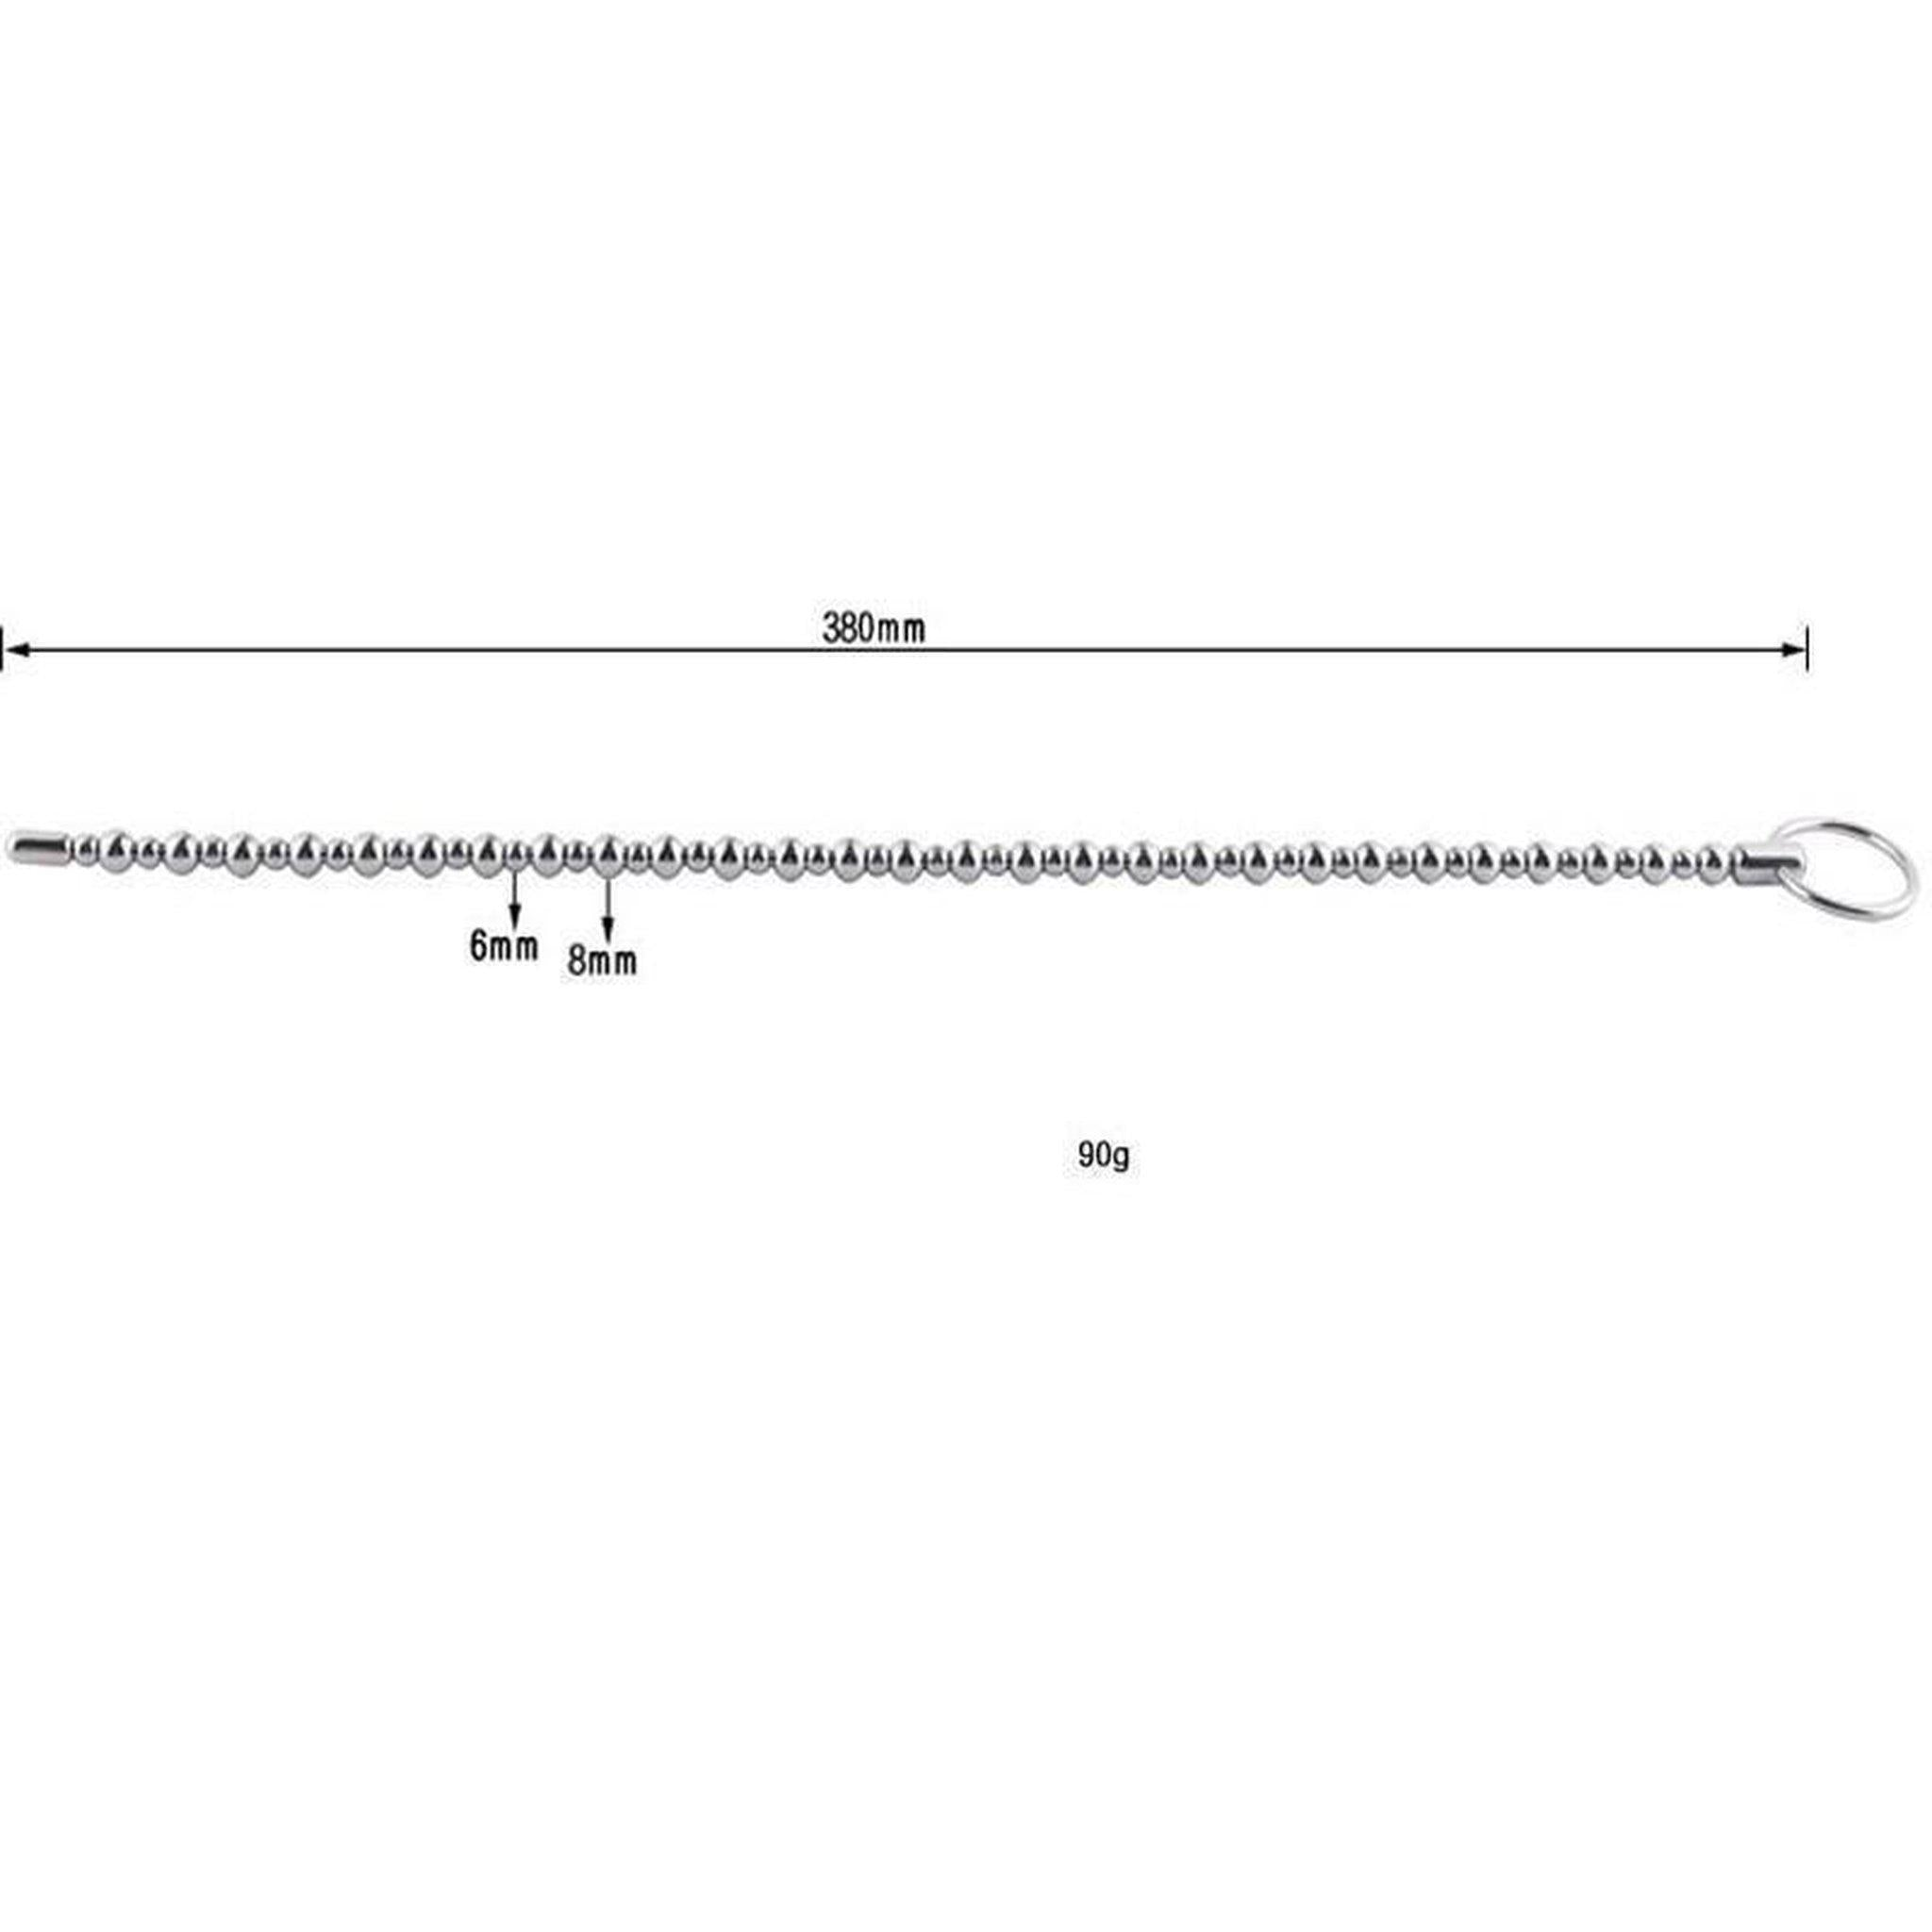 380mm Super Long Stainless Steel Urethral Sounding Beads-Good Girl xox-buy-bdsm-bondage-gear-tools-toys-online-good-girl-xox